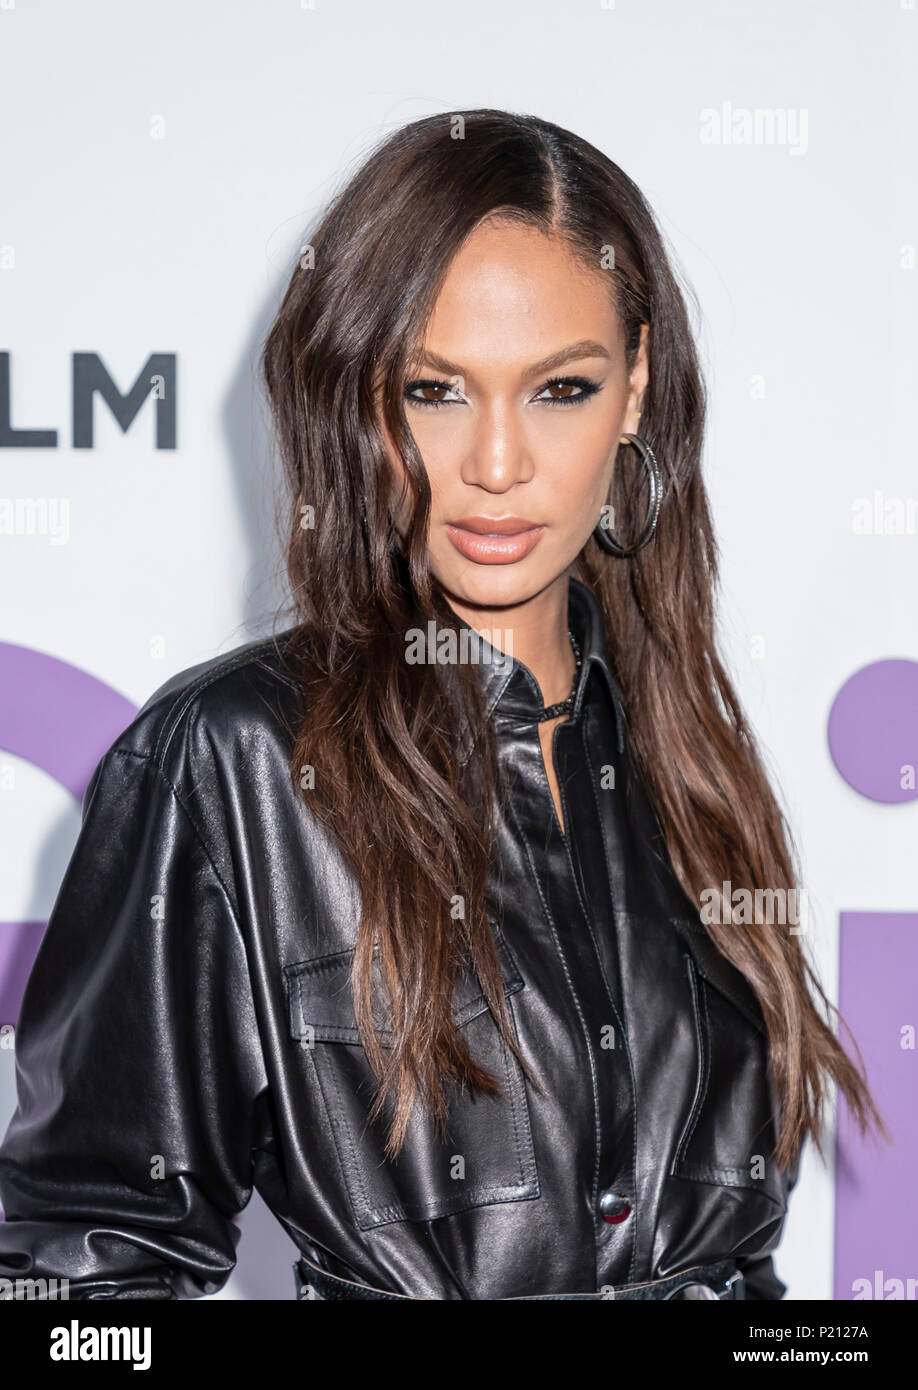 New York, NY, USA - June 12, 2018: Joan Smalls attends the New York special screening of the Netflix film 'Set It Up' at AMC Loews Lincoln Square Credit: Sam Aronov/Alamy Live News - Stock Image